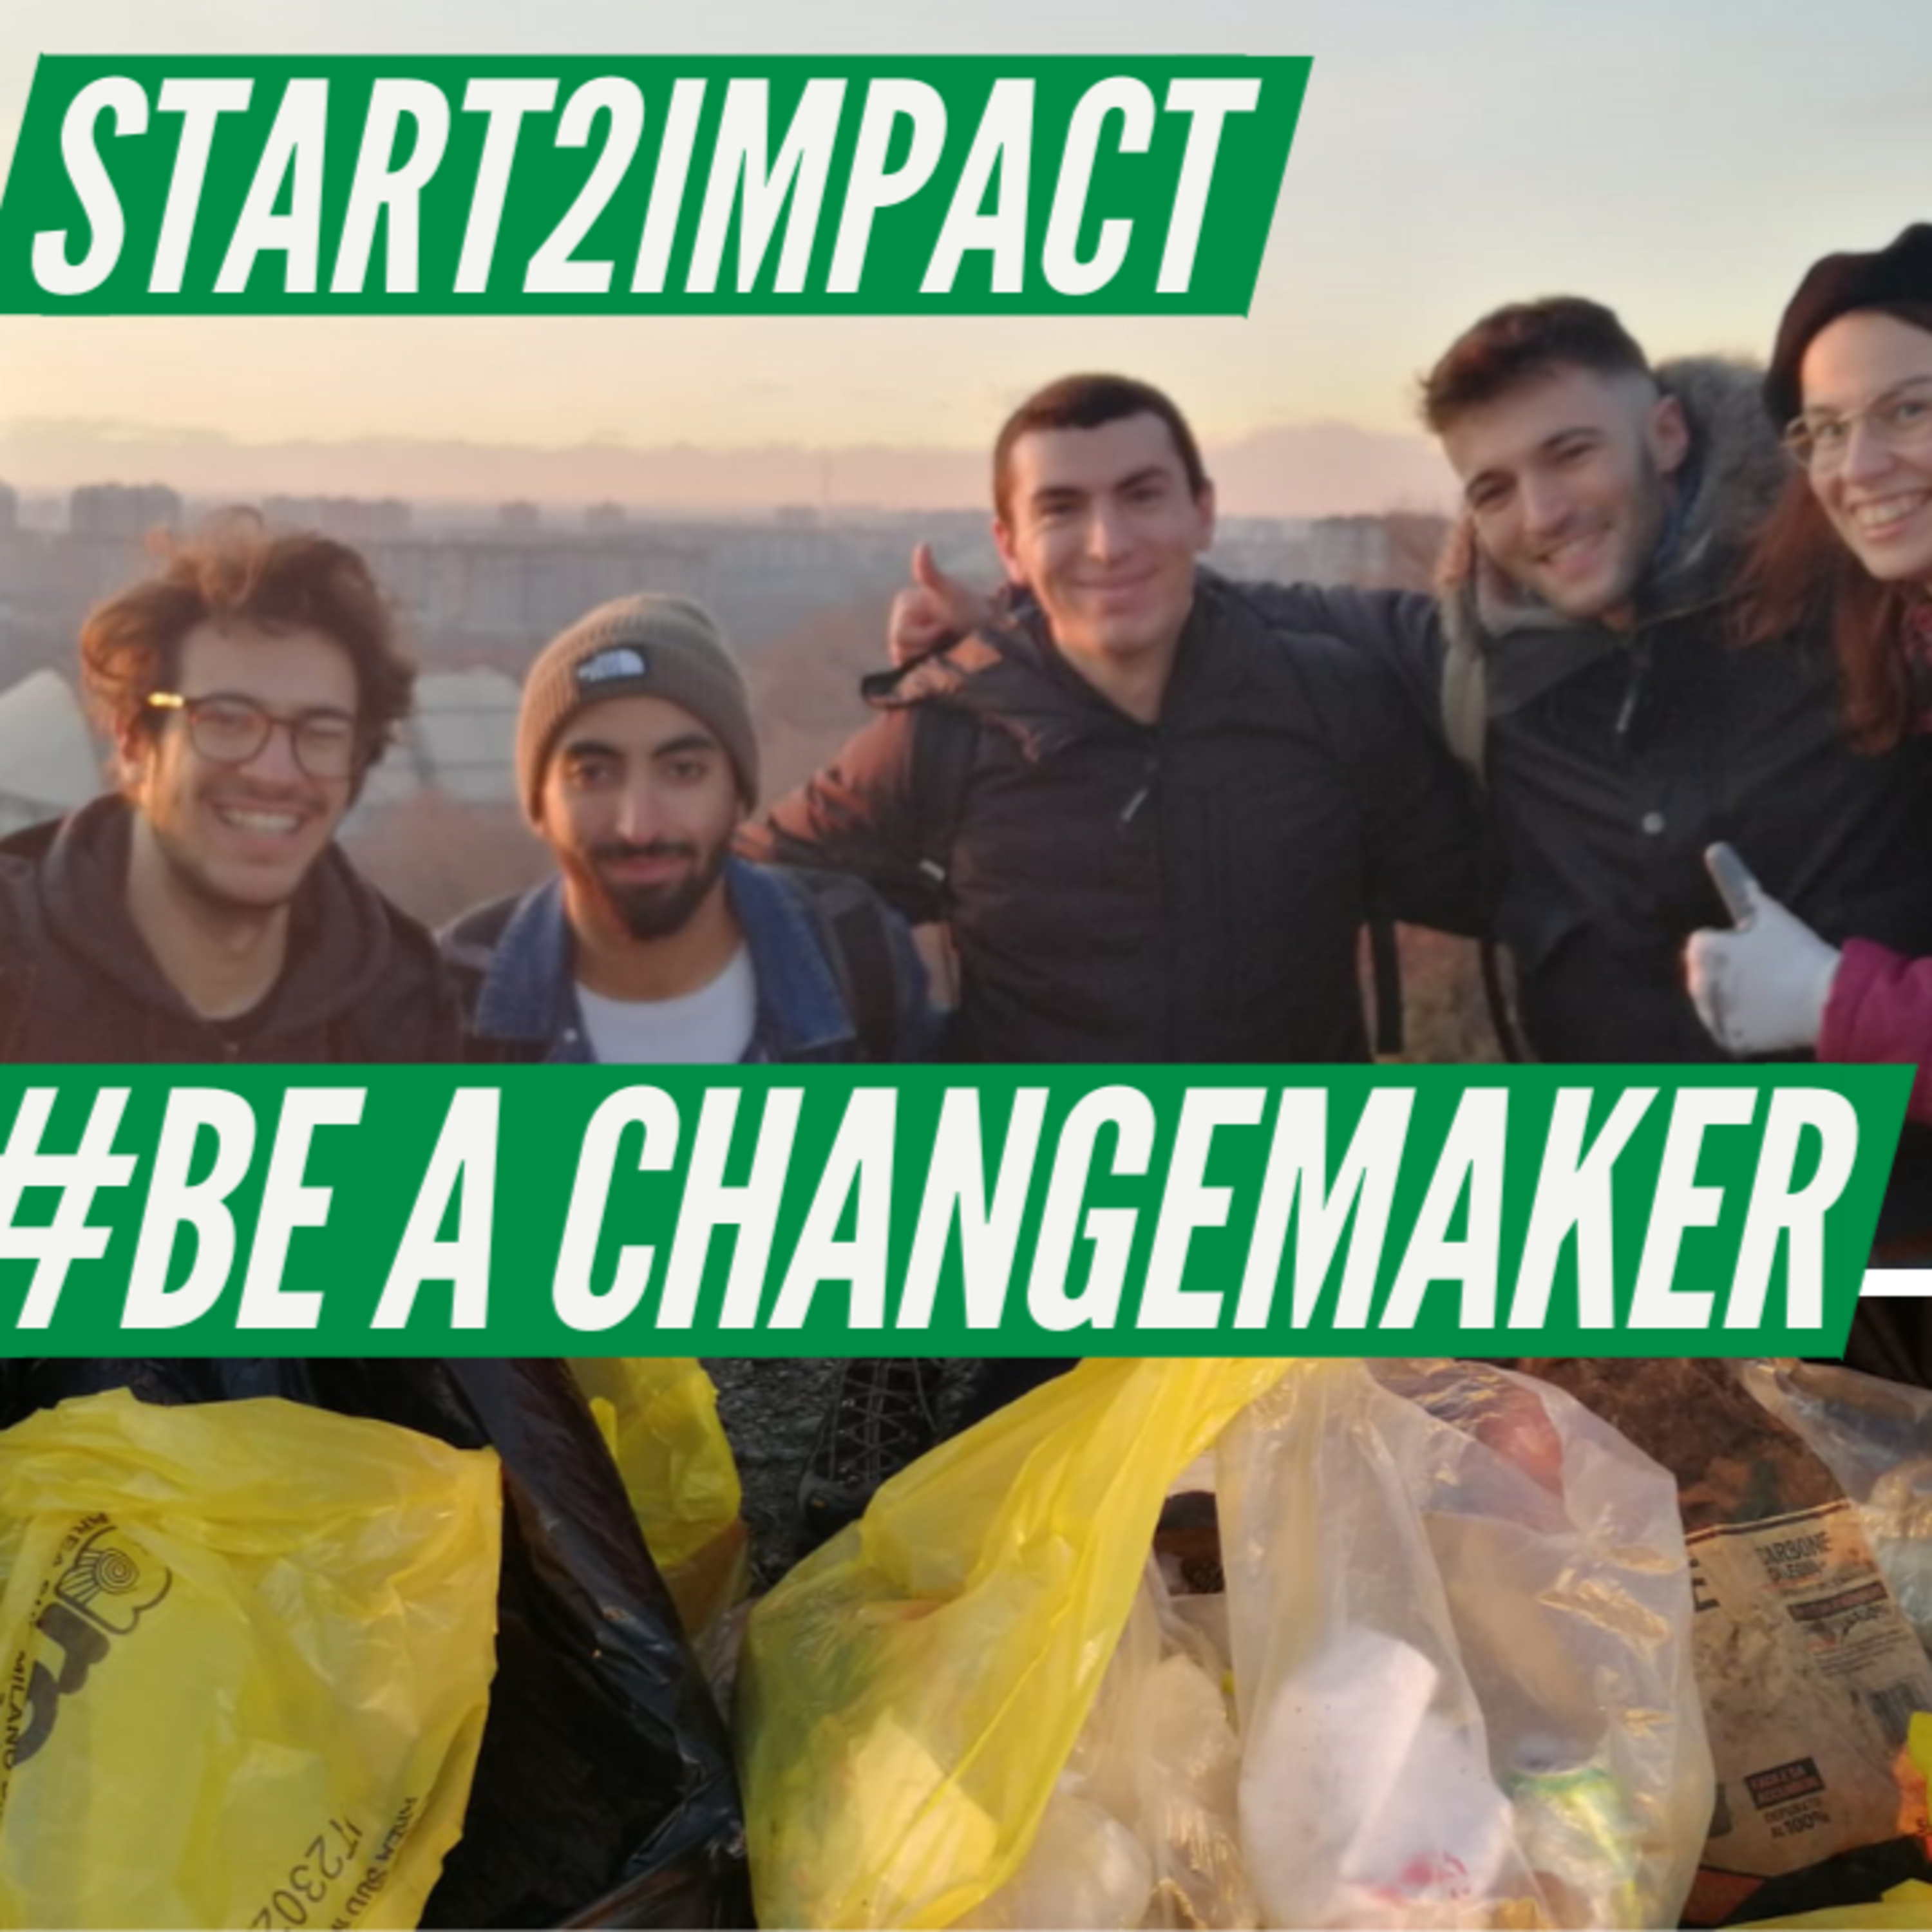 #BeAChangemaker | Pulizie al parco con Start2Impact